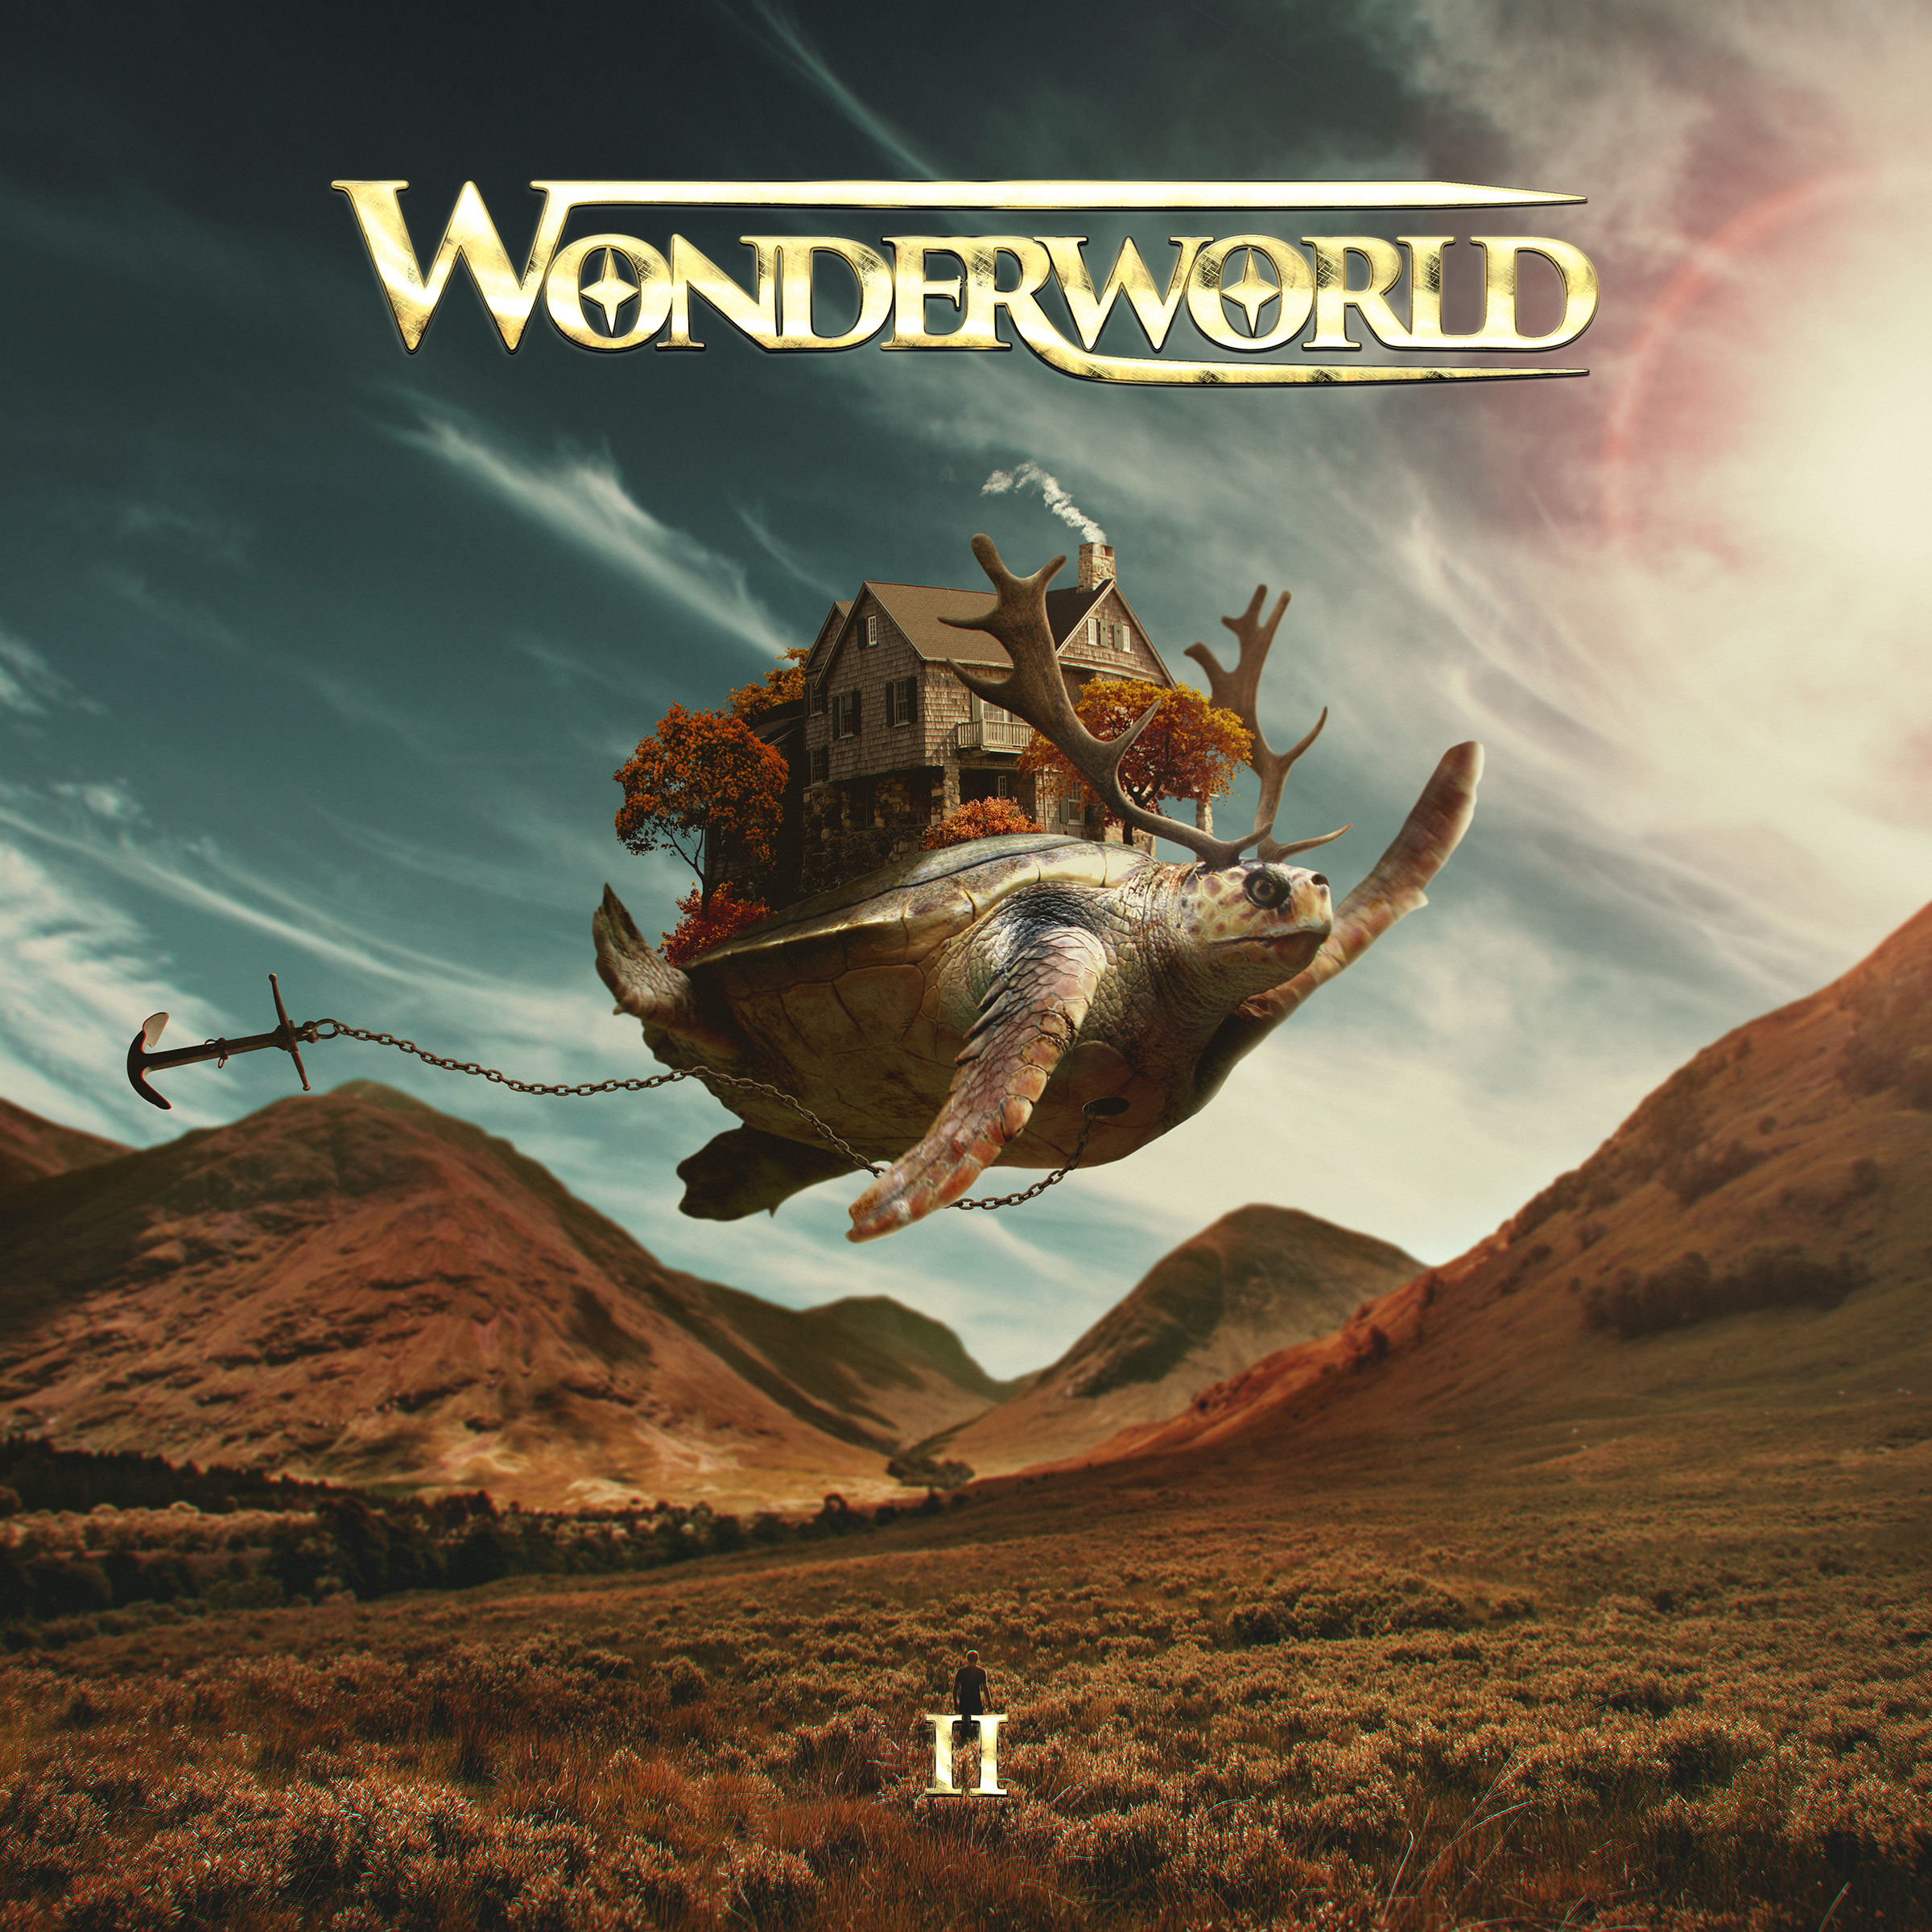 Wonderworld II - released March 2016.